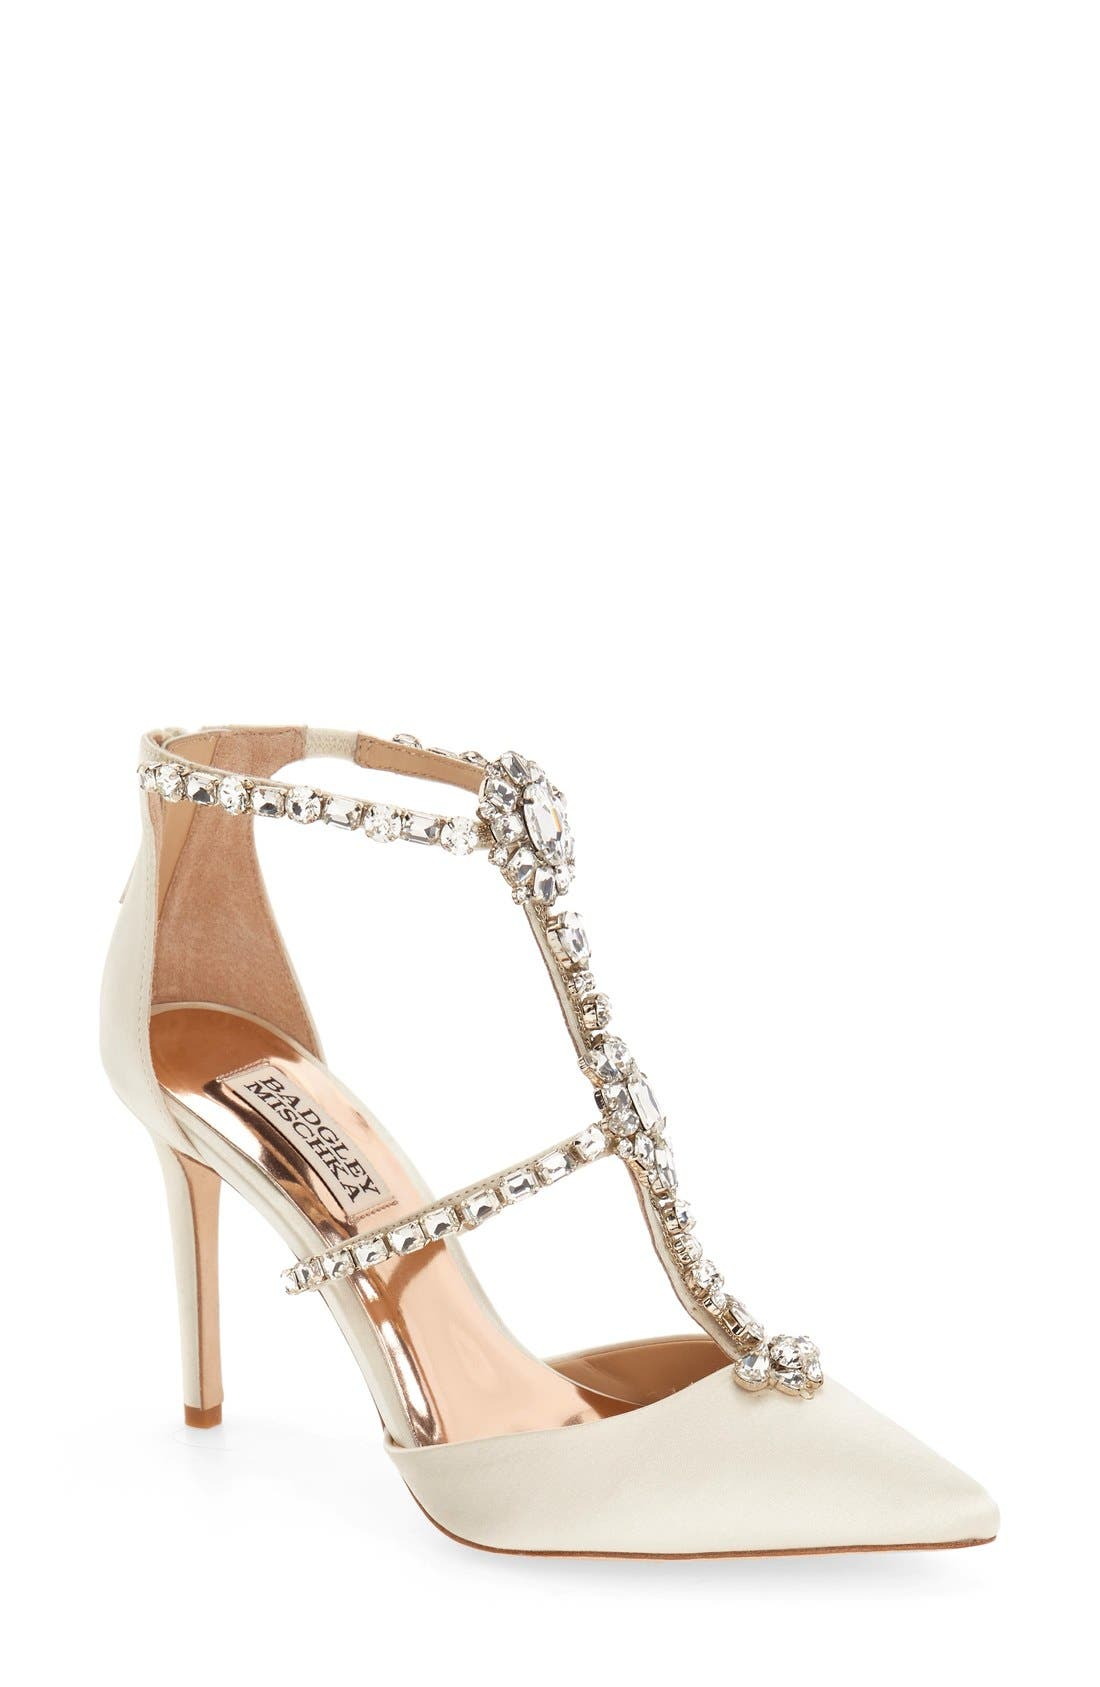 Alternate Image 1 Selected - Badgley Mischka 'Decker' Crystal Embellished T-Strap Pump (Women)